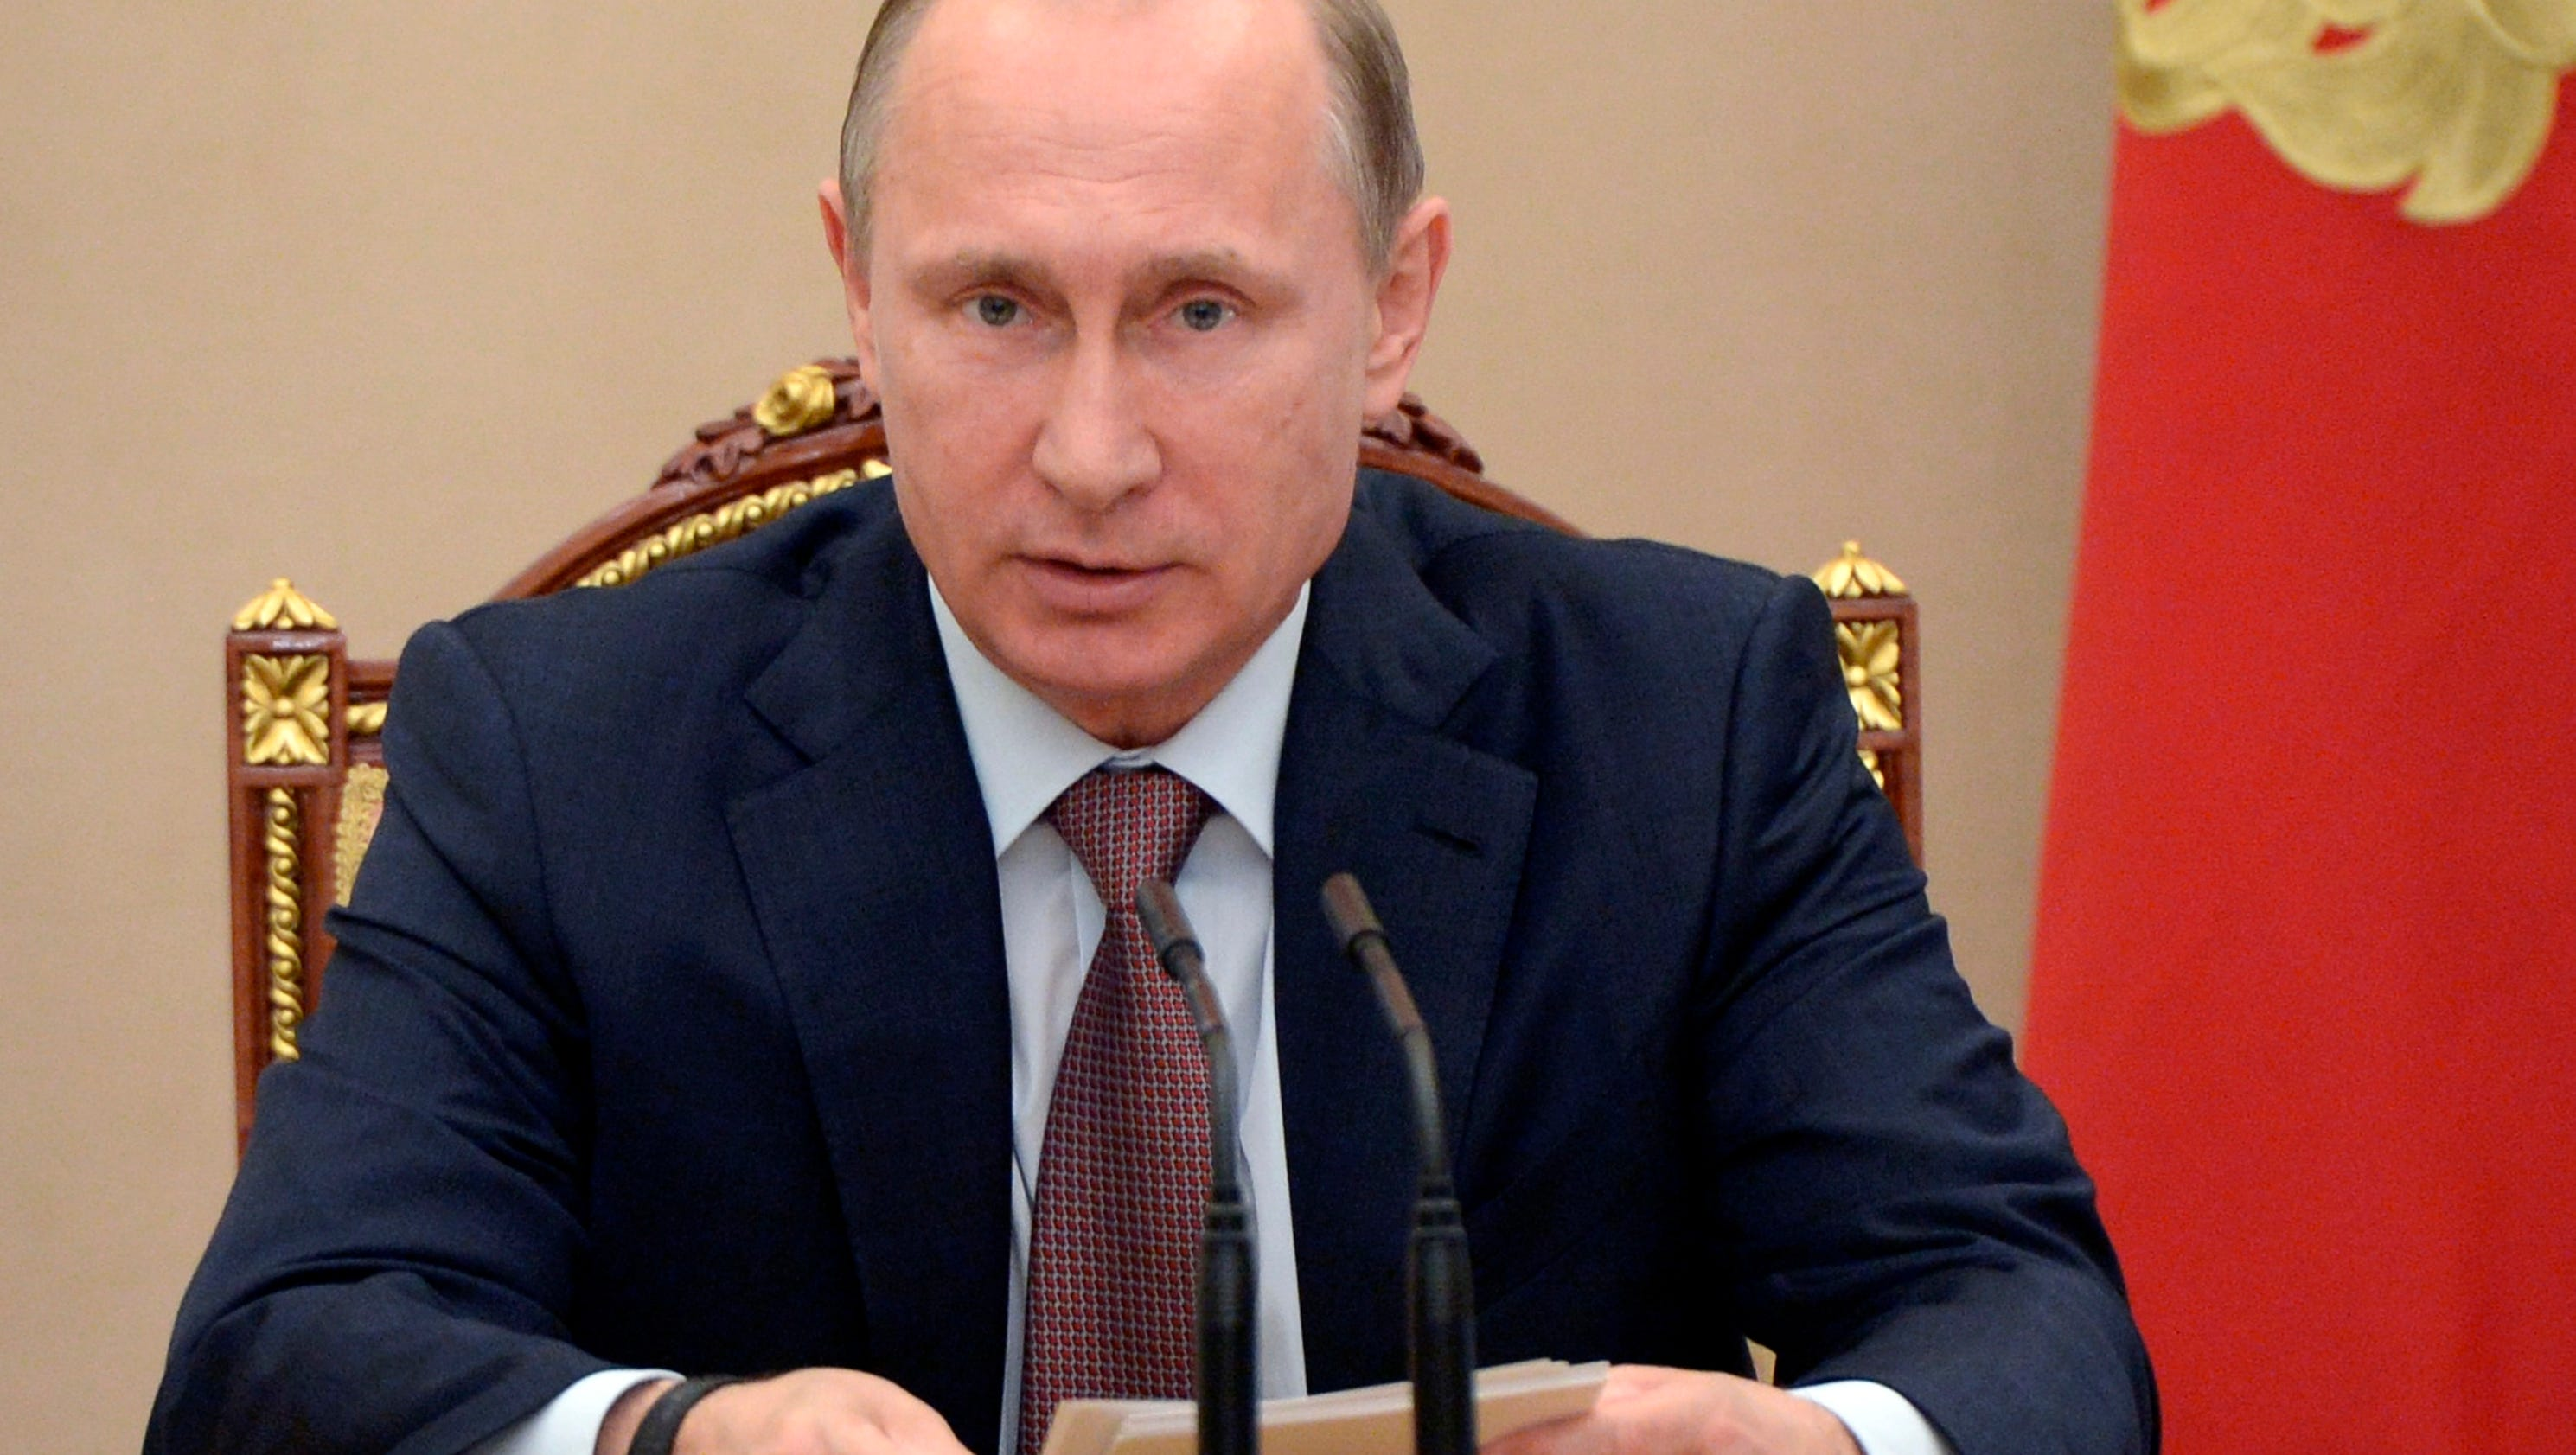 Russia retaliates for sanctions by ordering cuts to diplomatic staff